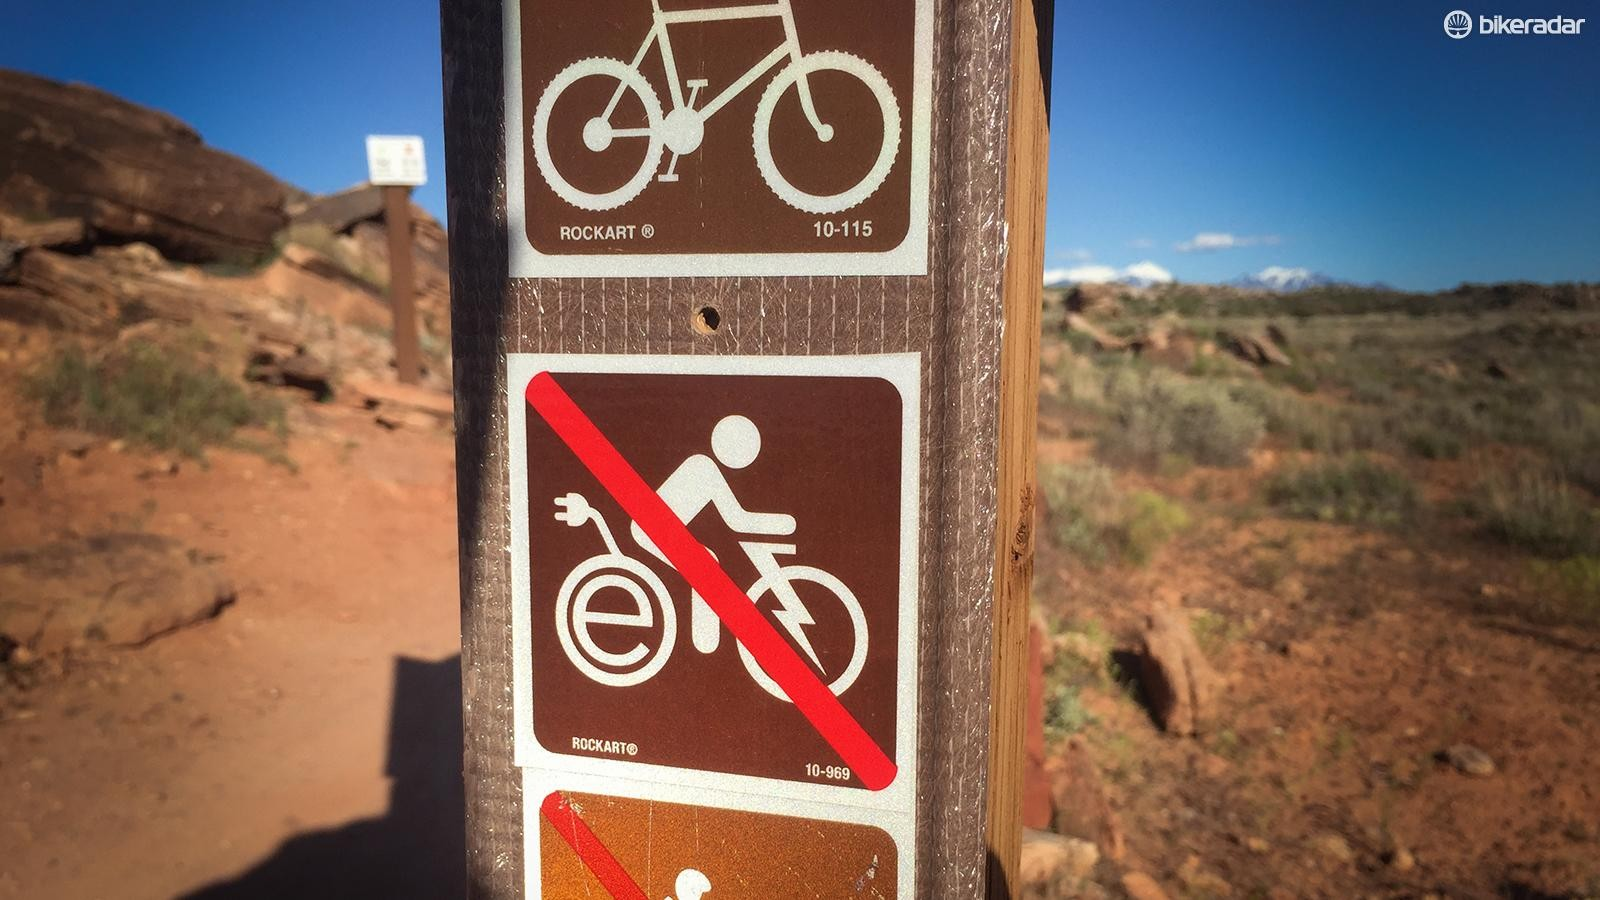 The companies pushing e-MTBs need to step up to educate retailers and riders as to where they are allowed and where they are banned — the future of trail access in the United States hangs in the balance